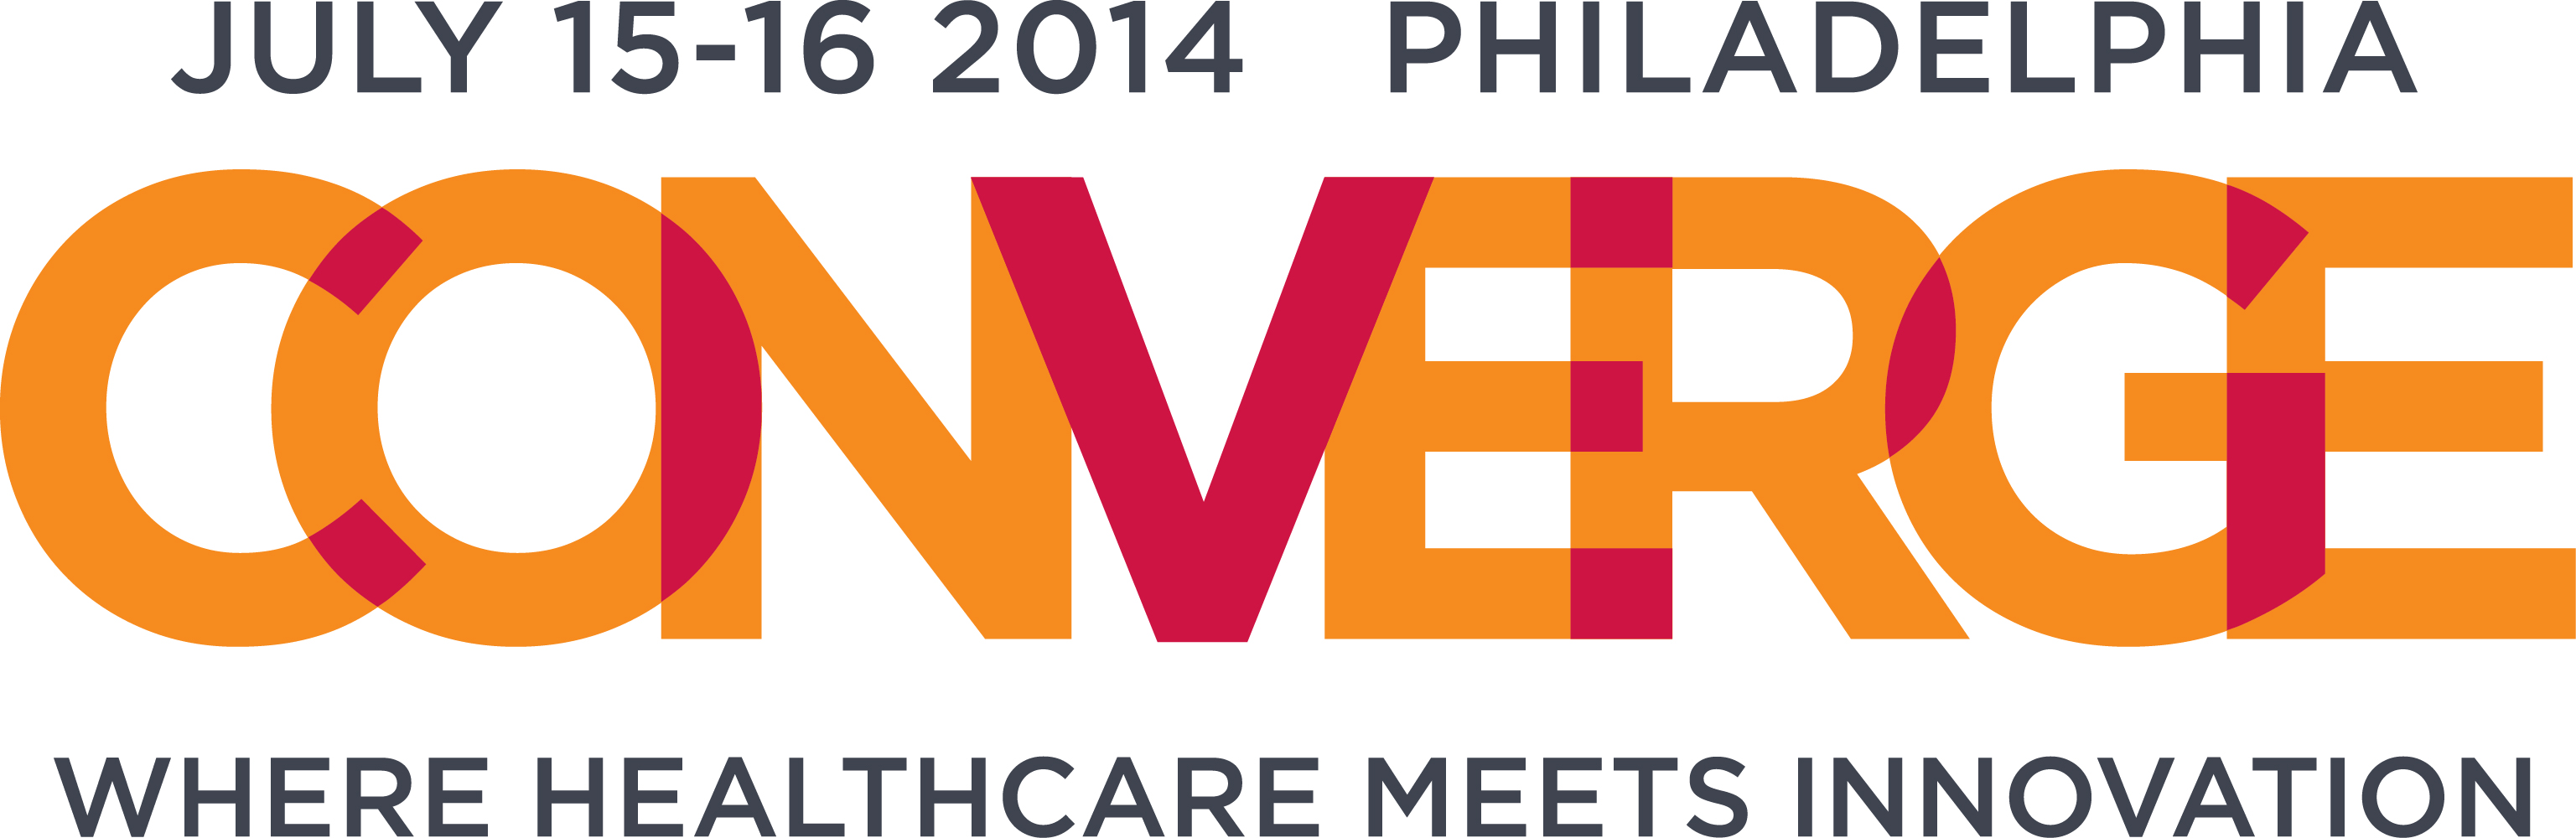 CONVERGE innovation summit features top experts, strategies and solutions to healthcare's biggest challenges